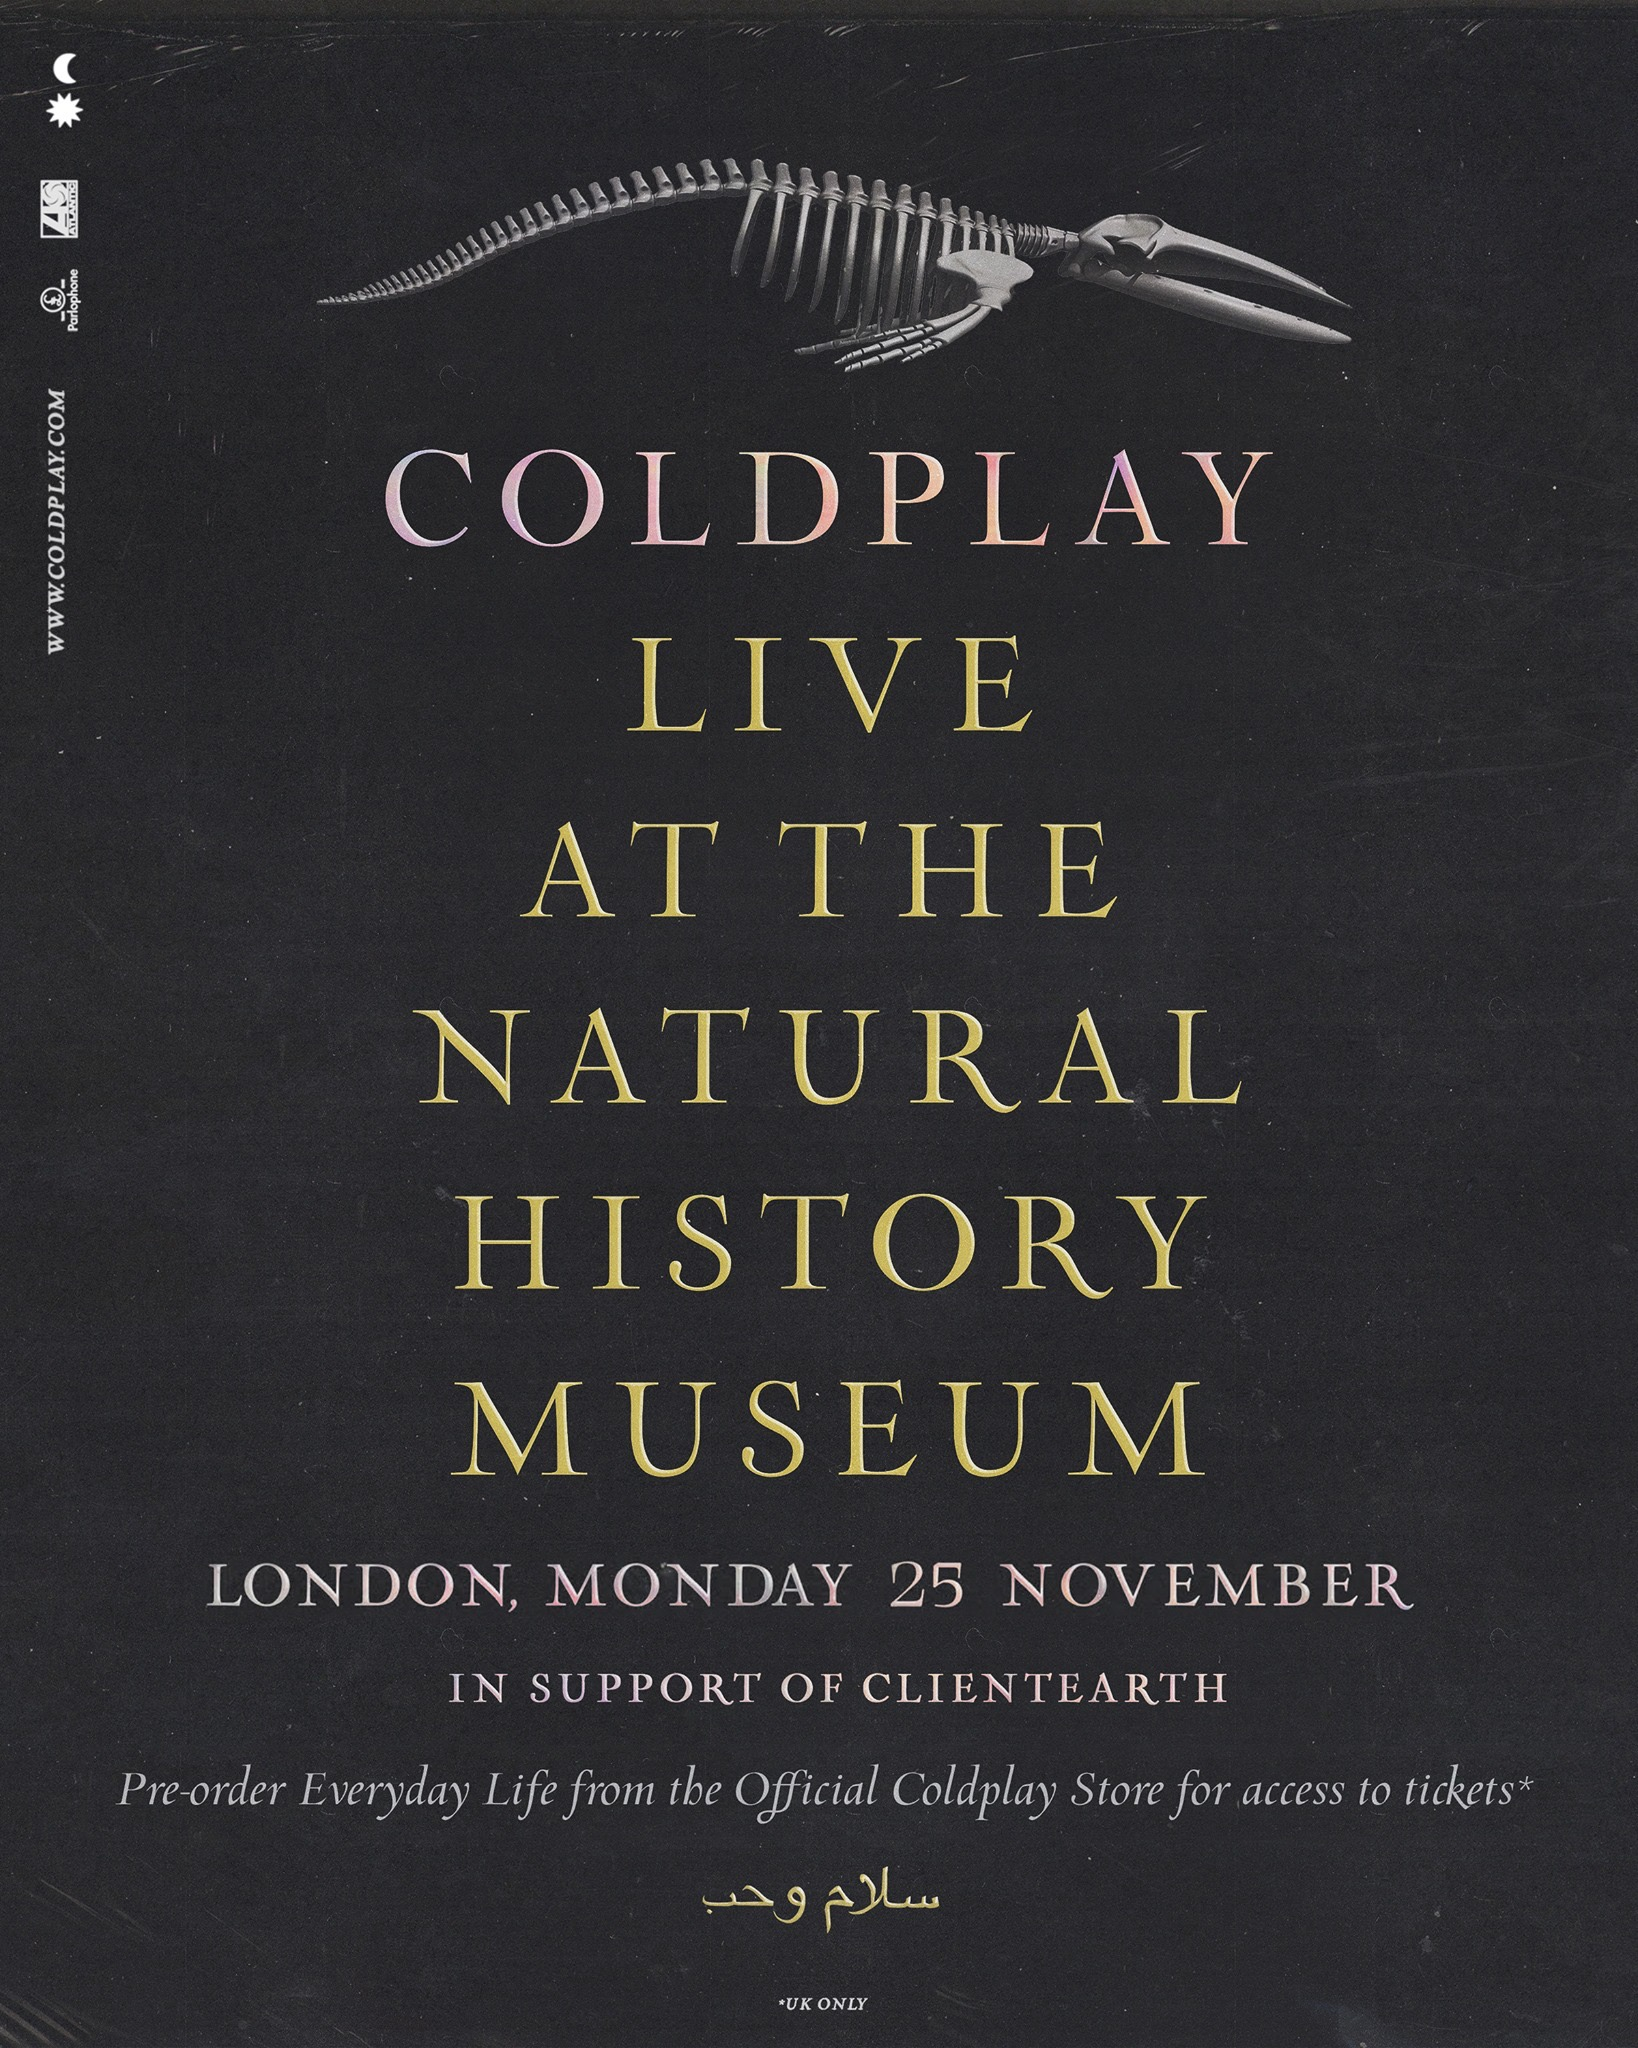 Natural History Museum Show Image